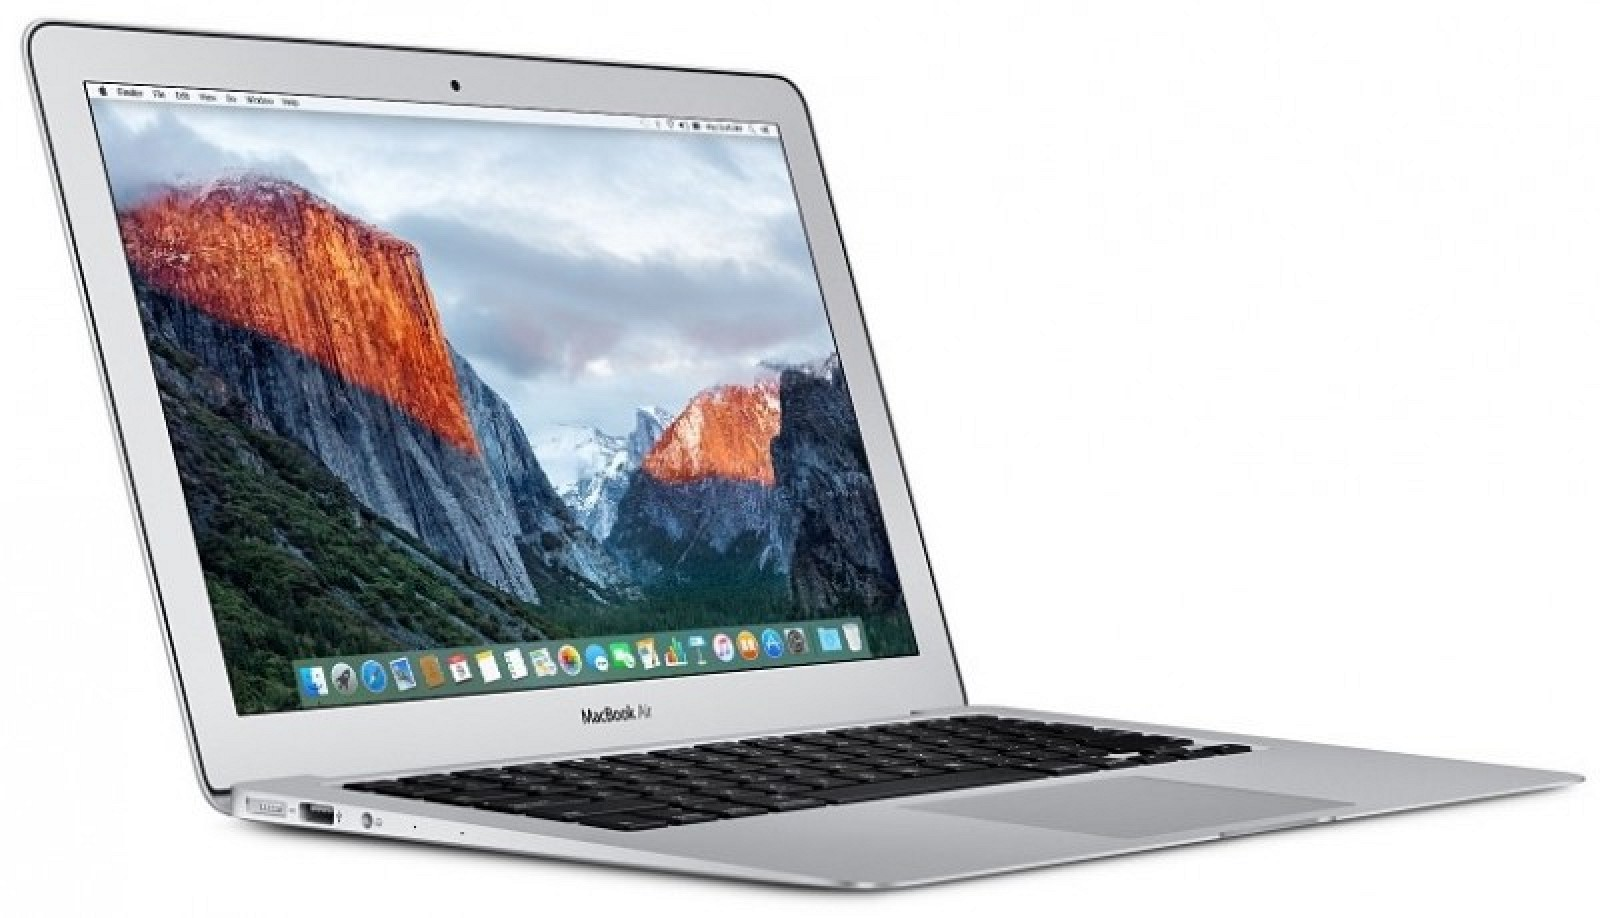 apple still offering 2015 13 inch macbook air 11 inch. Black Bedroom Furniture Sets. Home Design Ideas